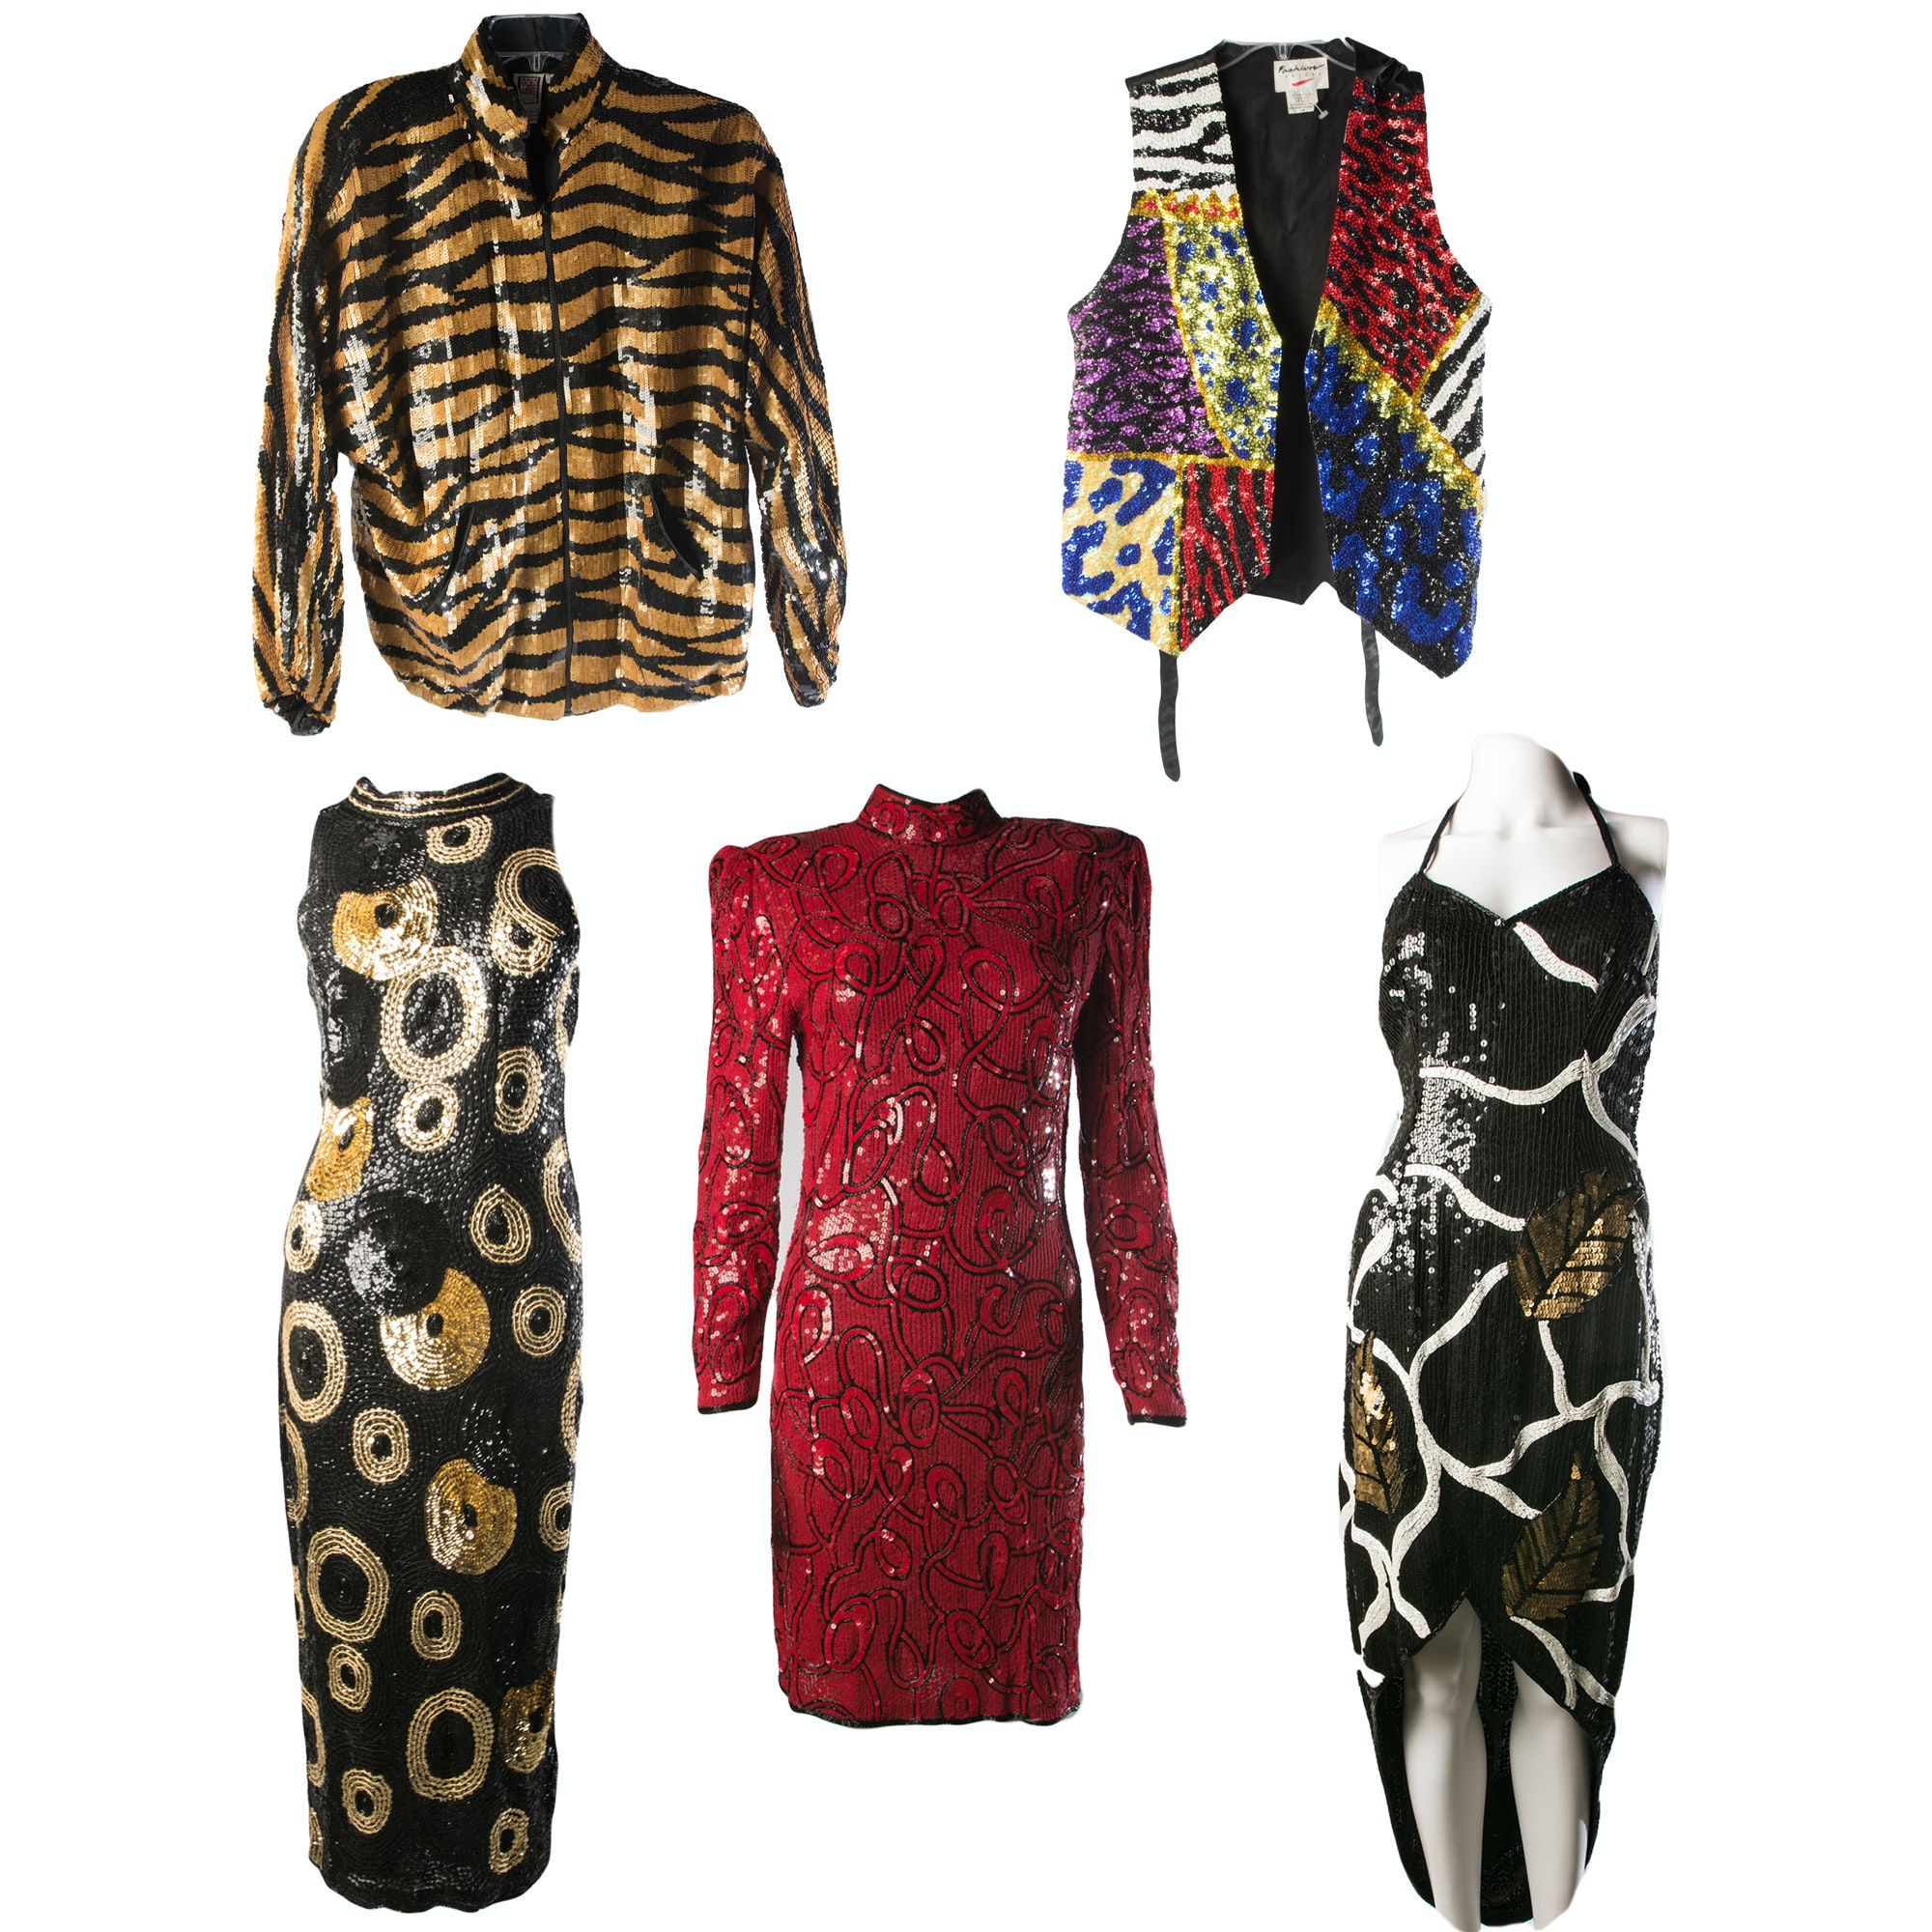 Women's Vintage Sequined Clothing